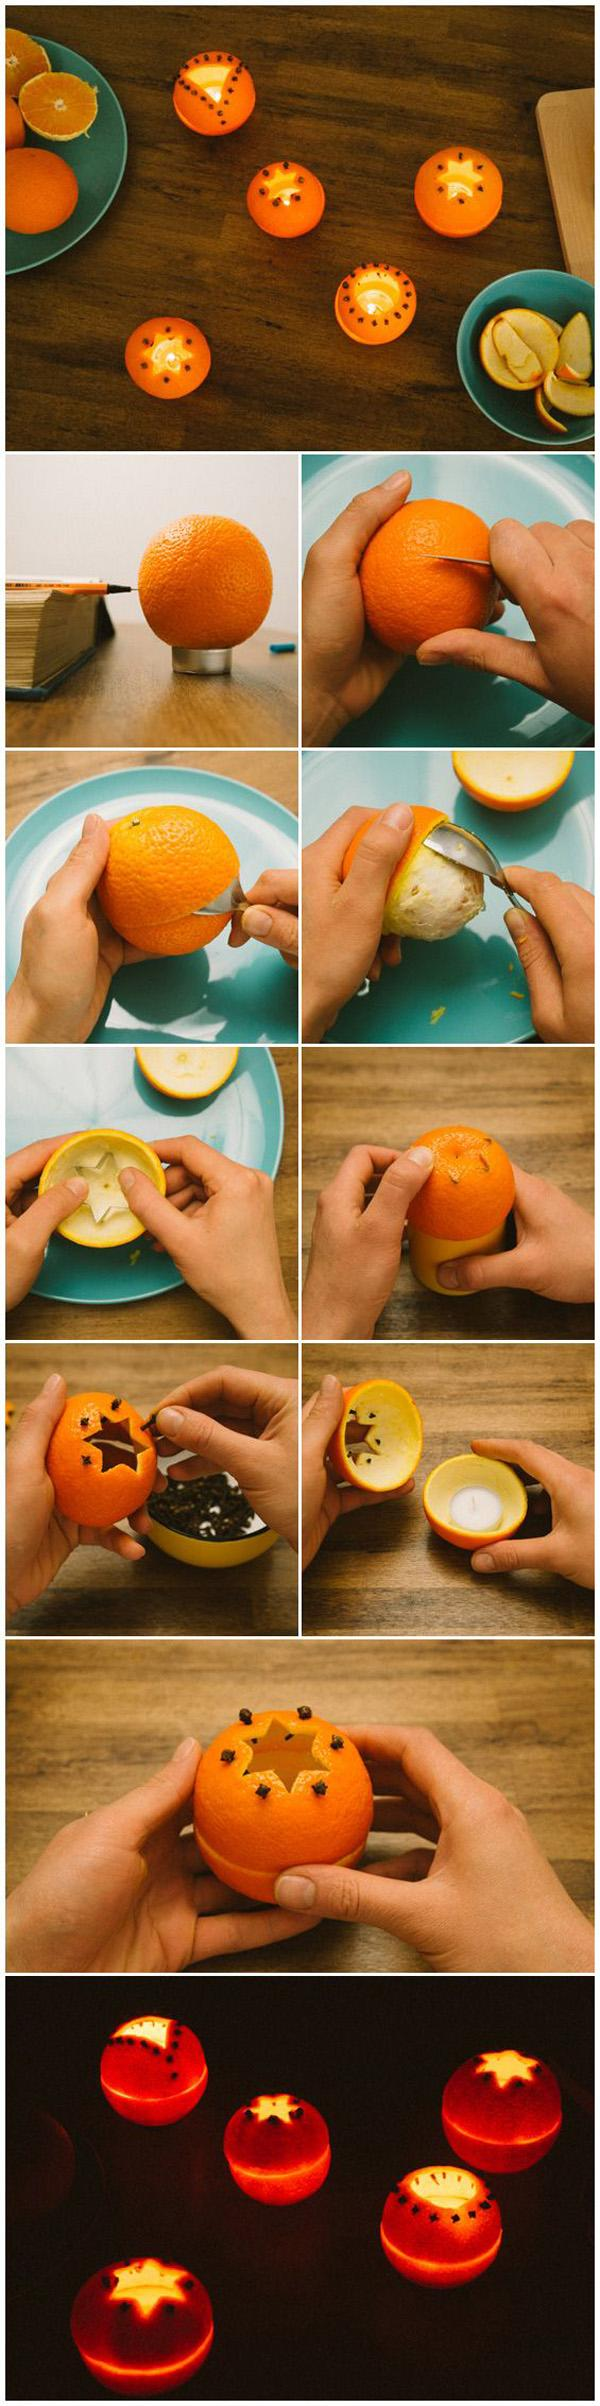 DIY candle holders made from oranges